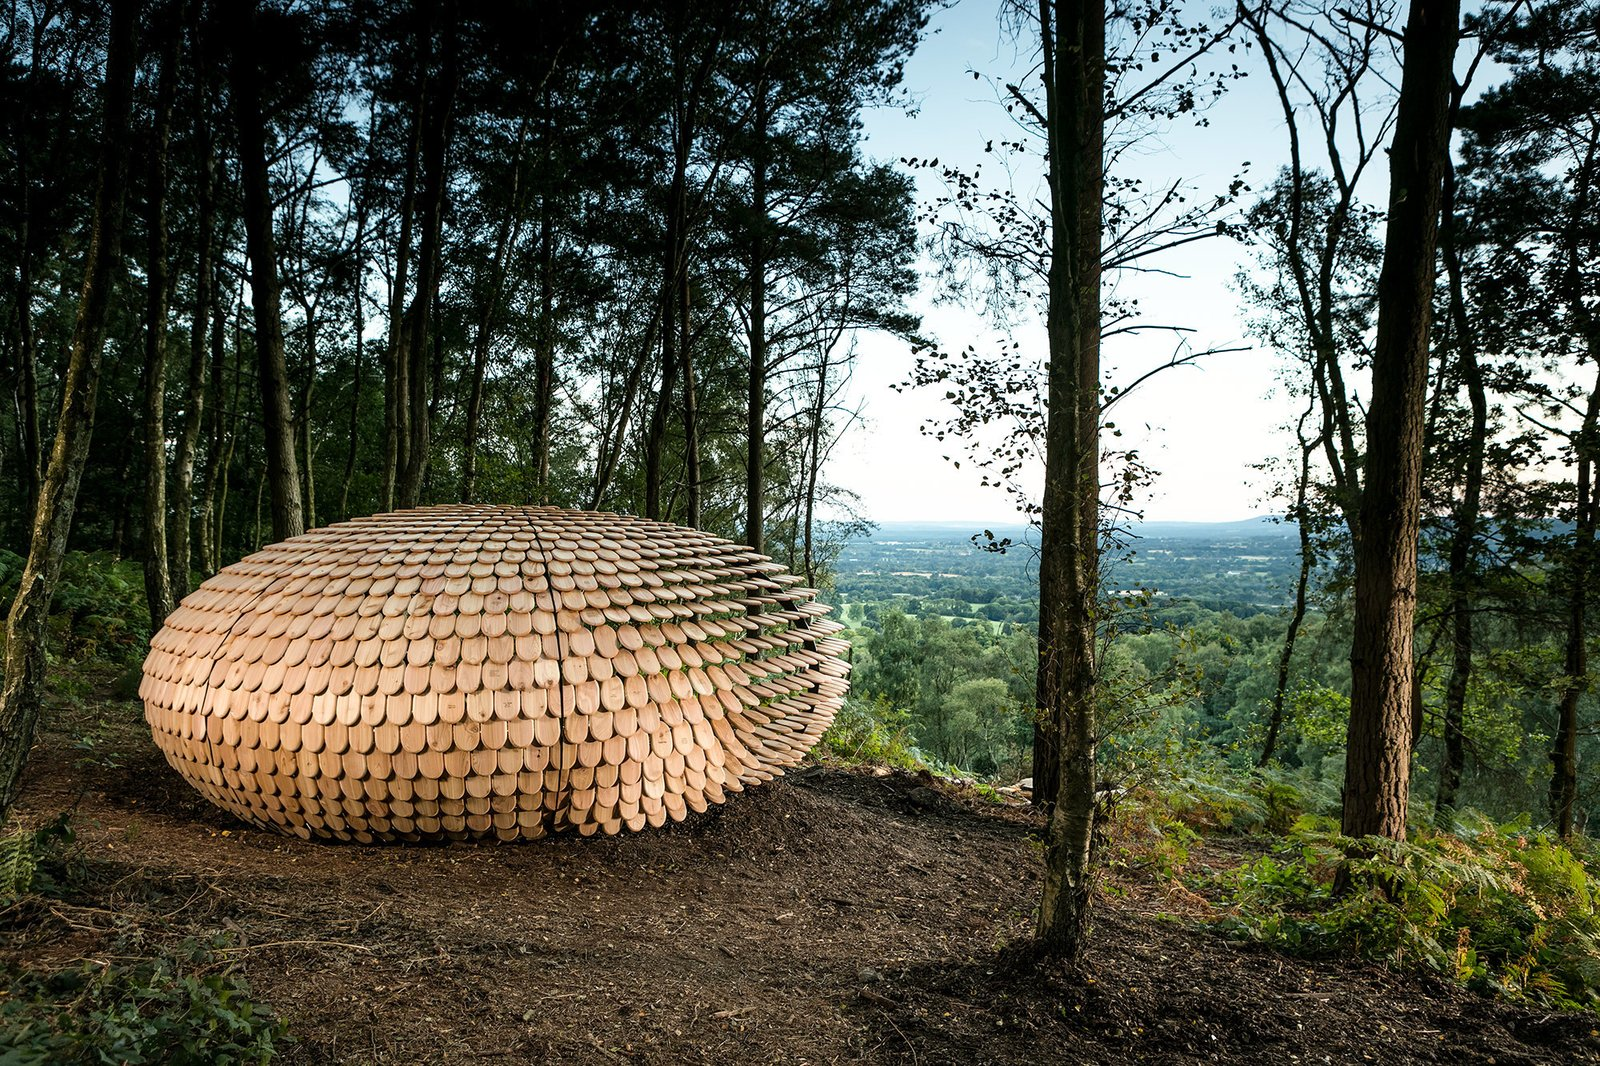 Photo 1 of 5 in An Organic Cedar Wood Pavilion Filled With Meaning